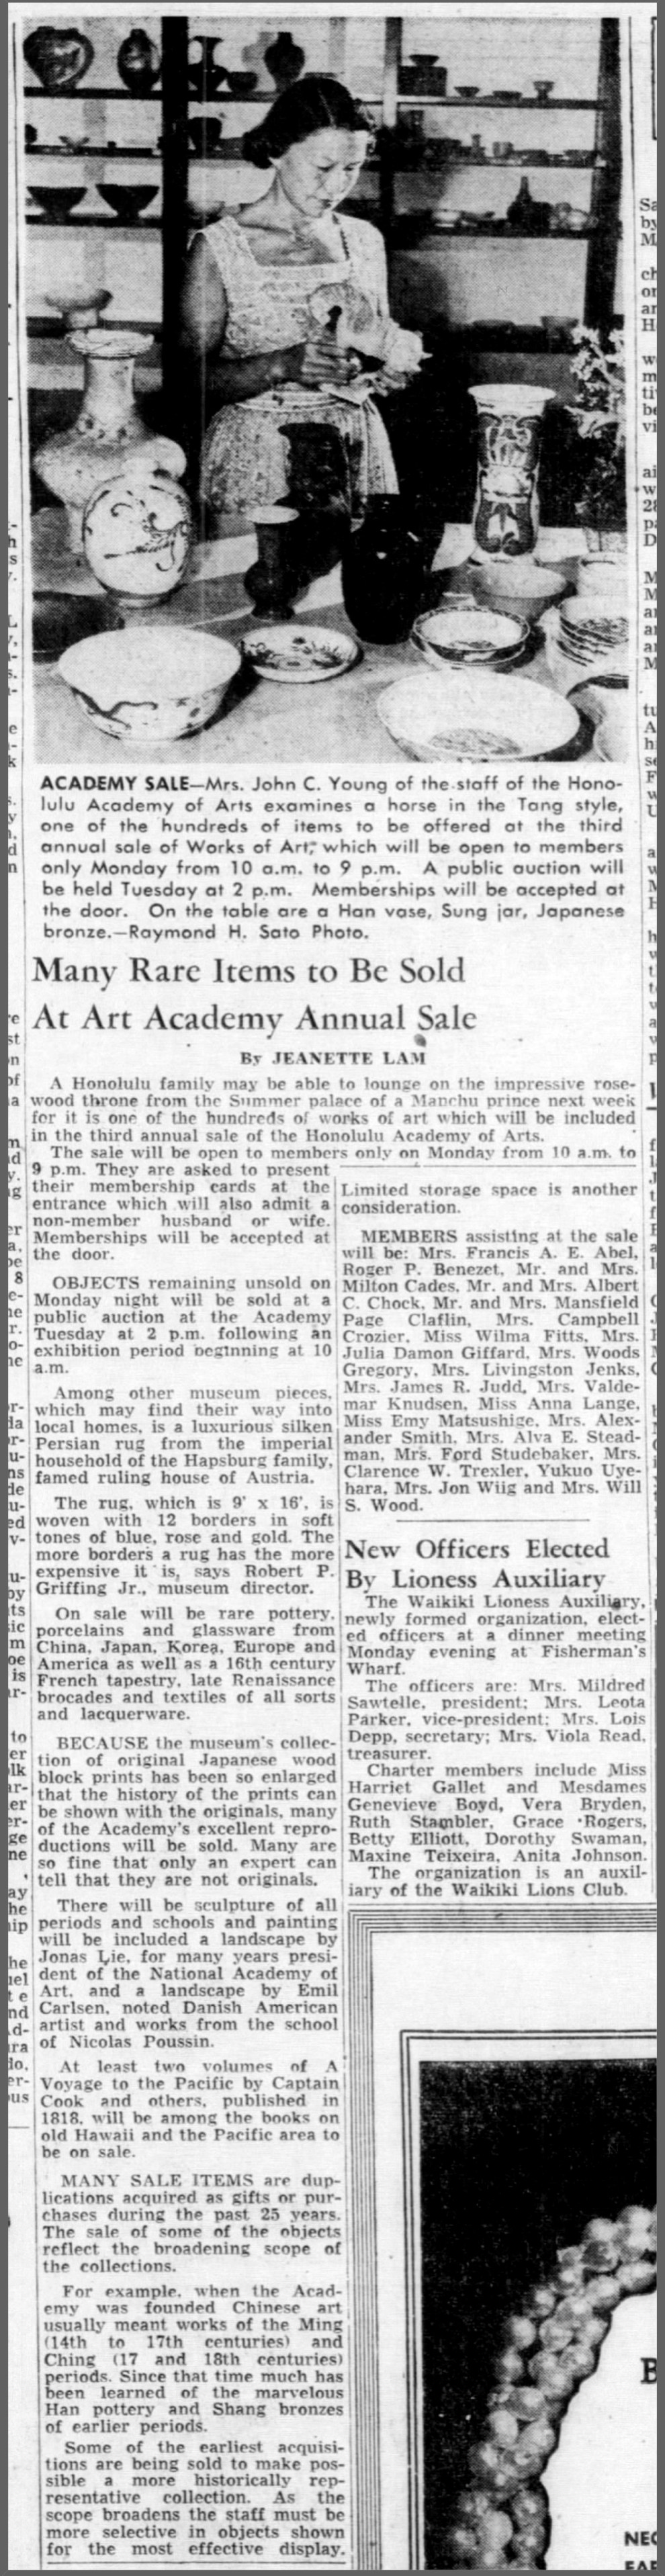 "Honolulu Star-Bulletin, Honolulu, HI, ""Many rare items to be sold at art academy annual sale"" by Jeanette Lam, Friday, October 9, 1953, page 15, not illustrated"